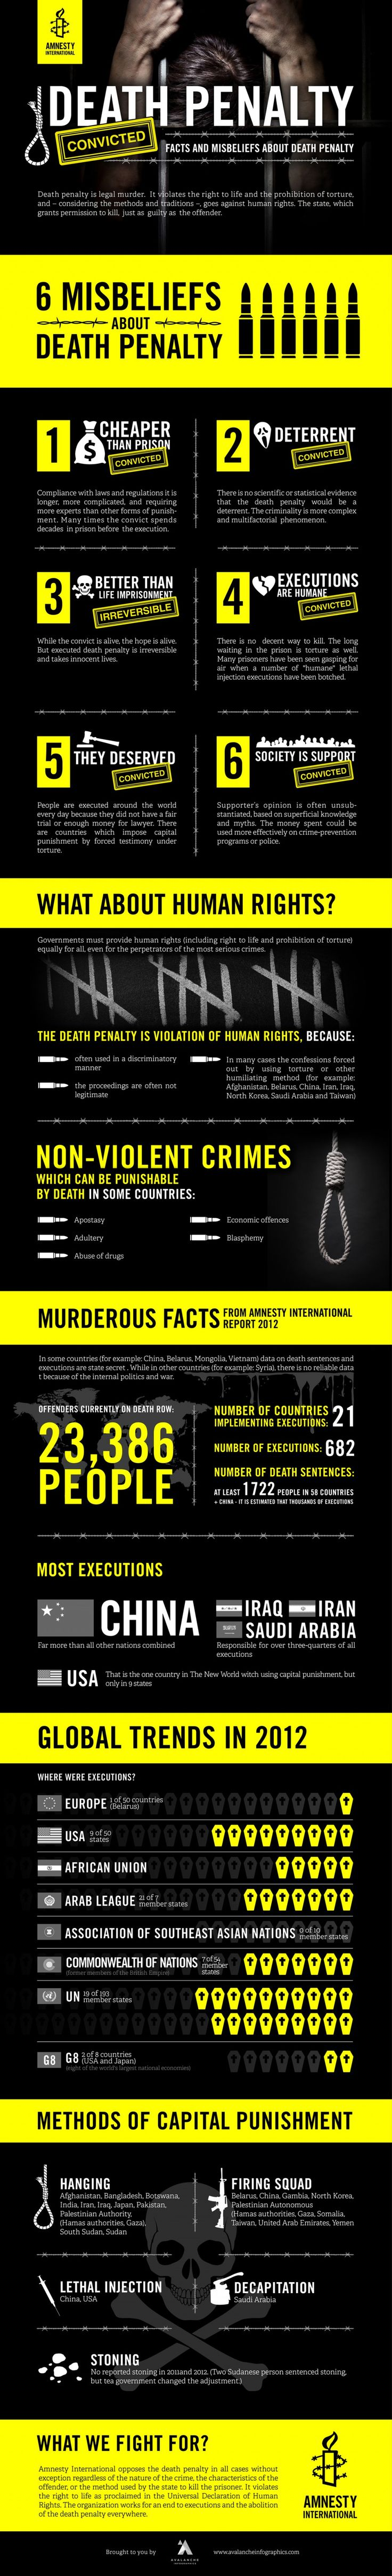 Avalanche Infographics - Amnesty International: Death Penalty